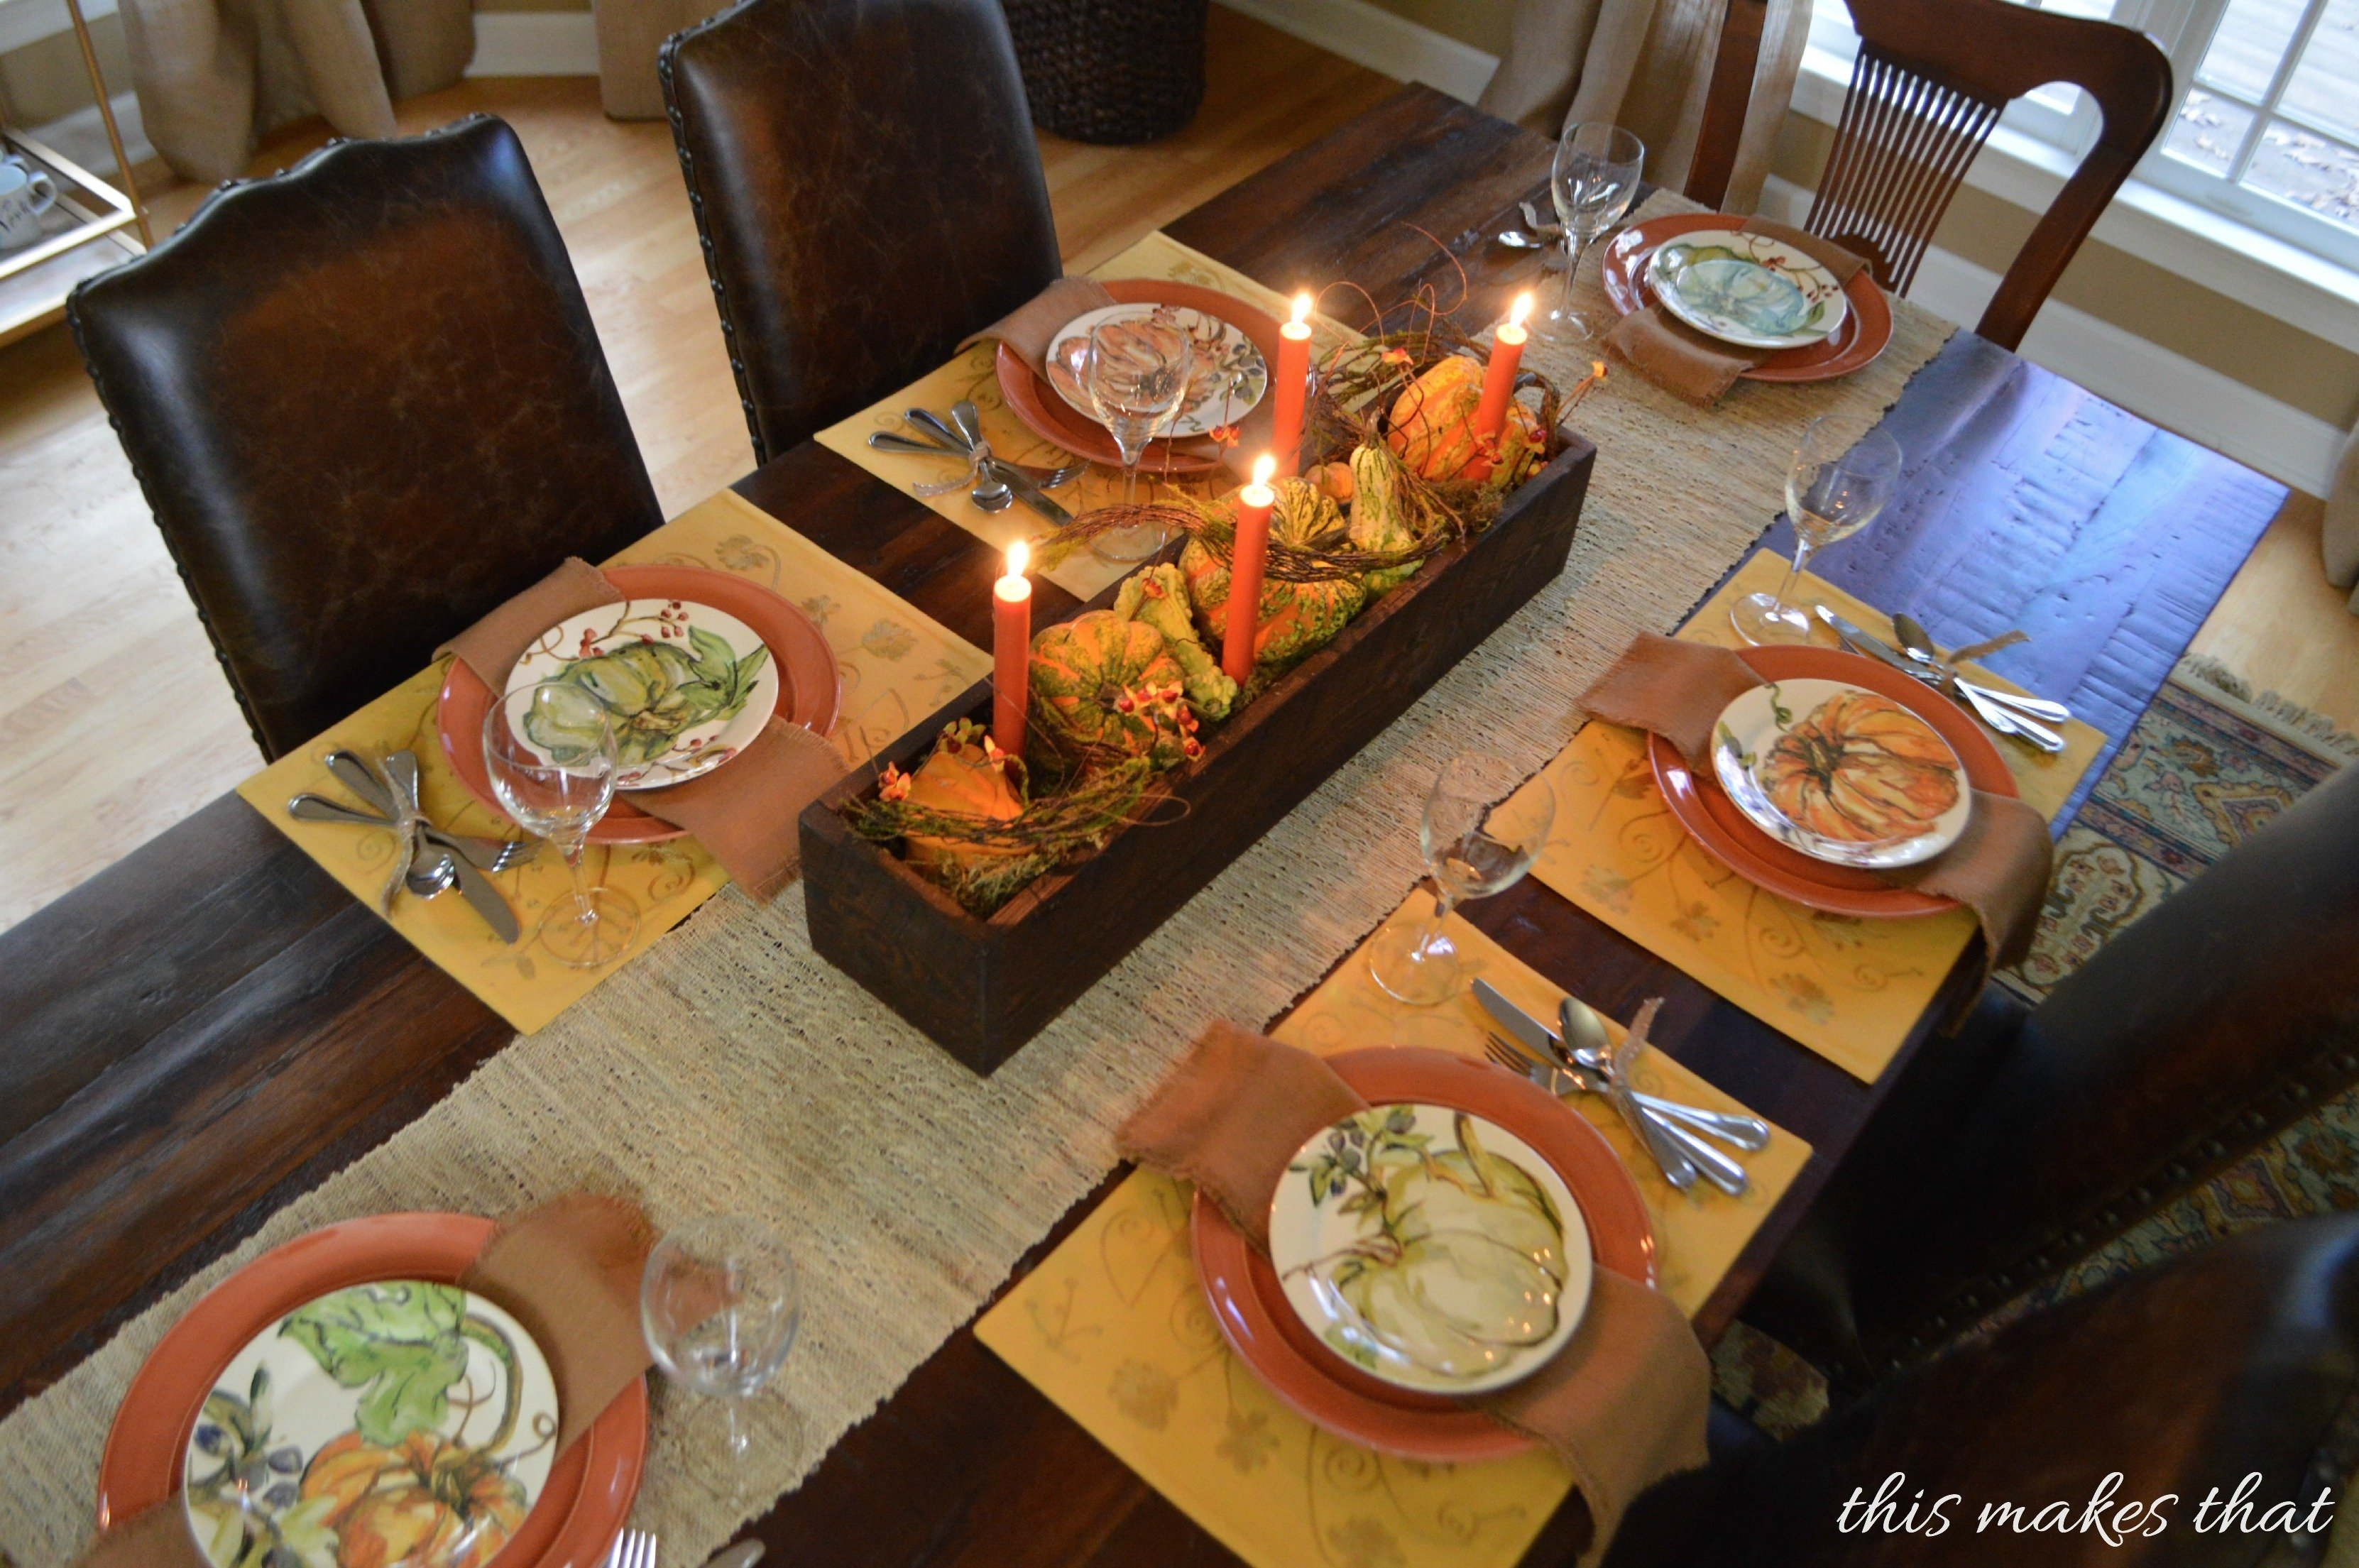 10 Attractive Table Setting Ideas For Thanksgiving thanksgiving table setting ideas this makes that passover seder cool 2021